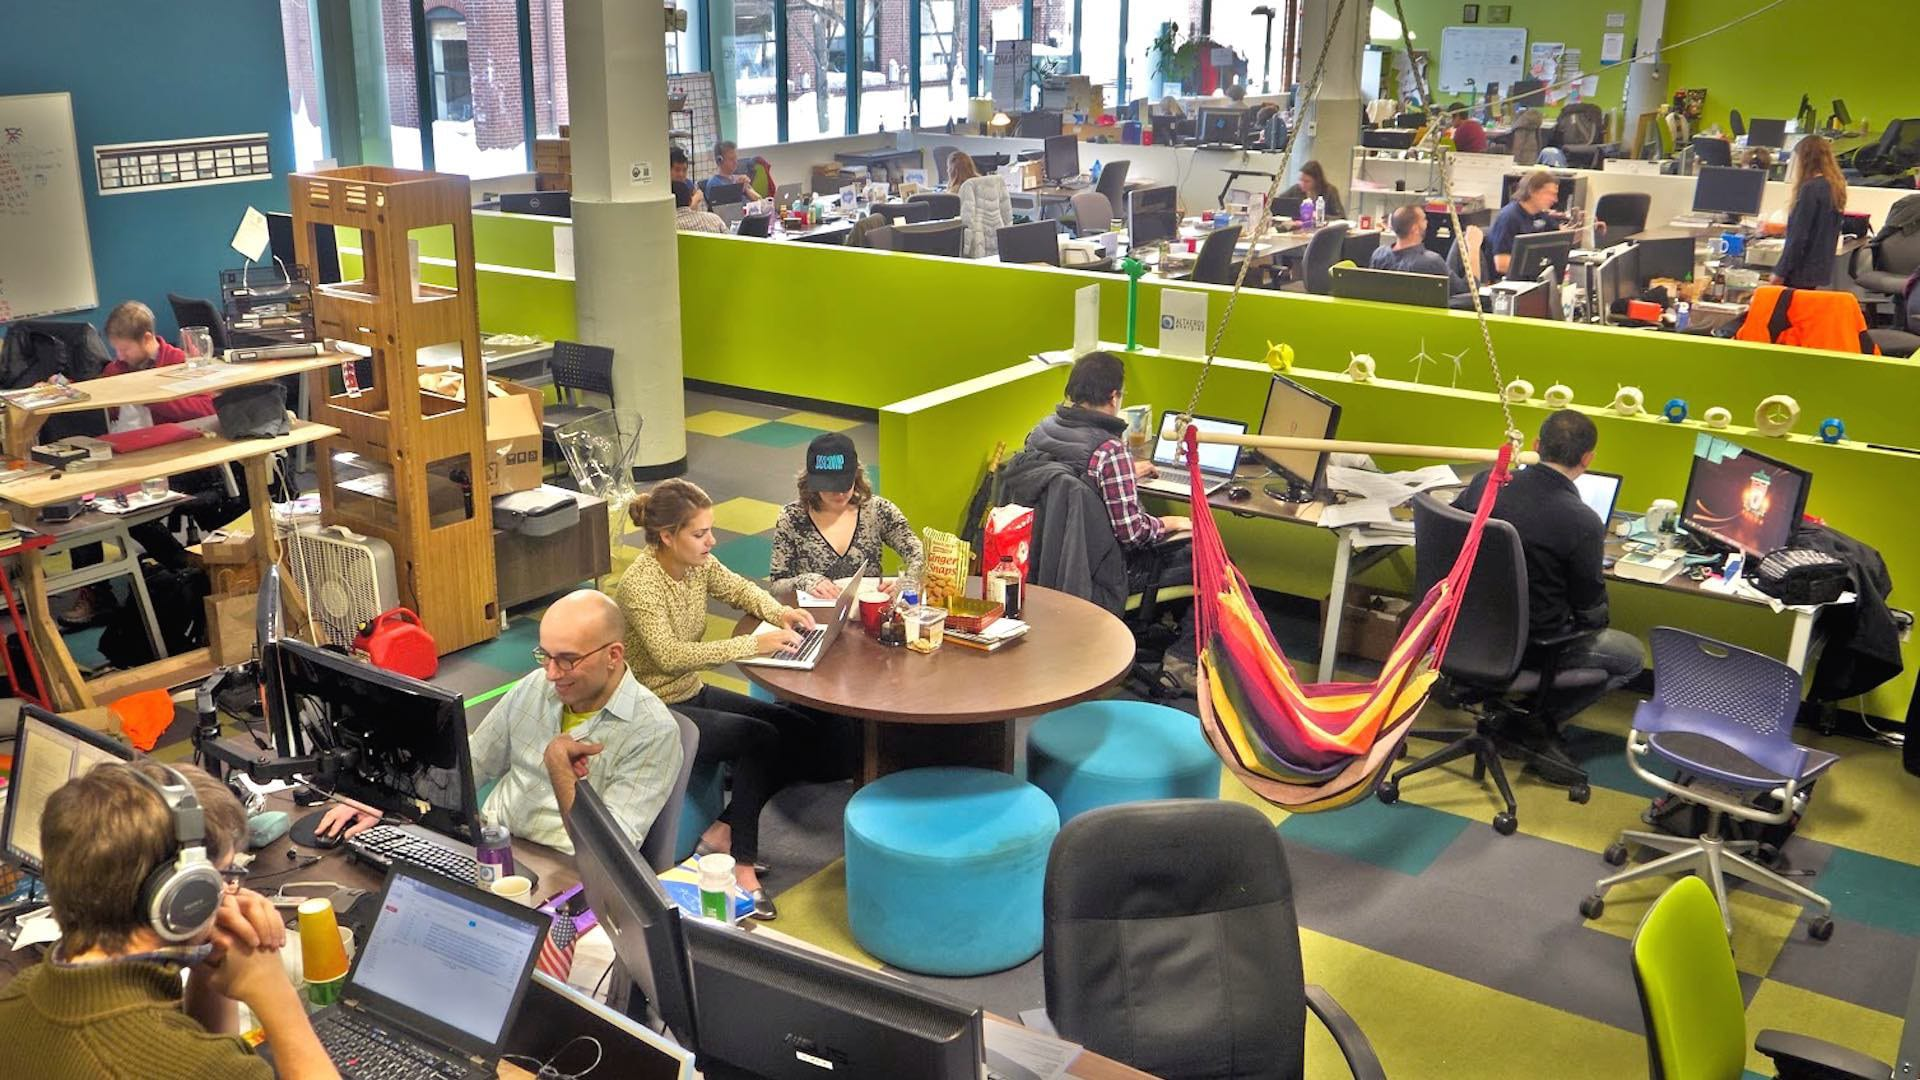 greentown labs people working on projects